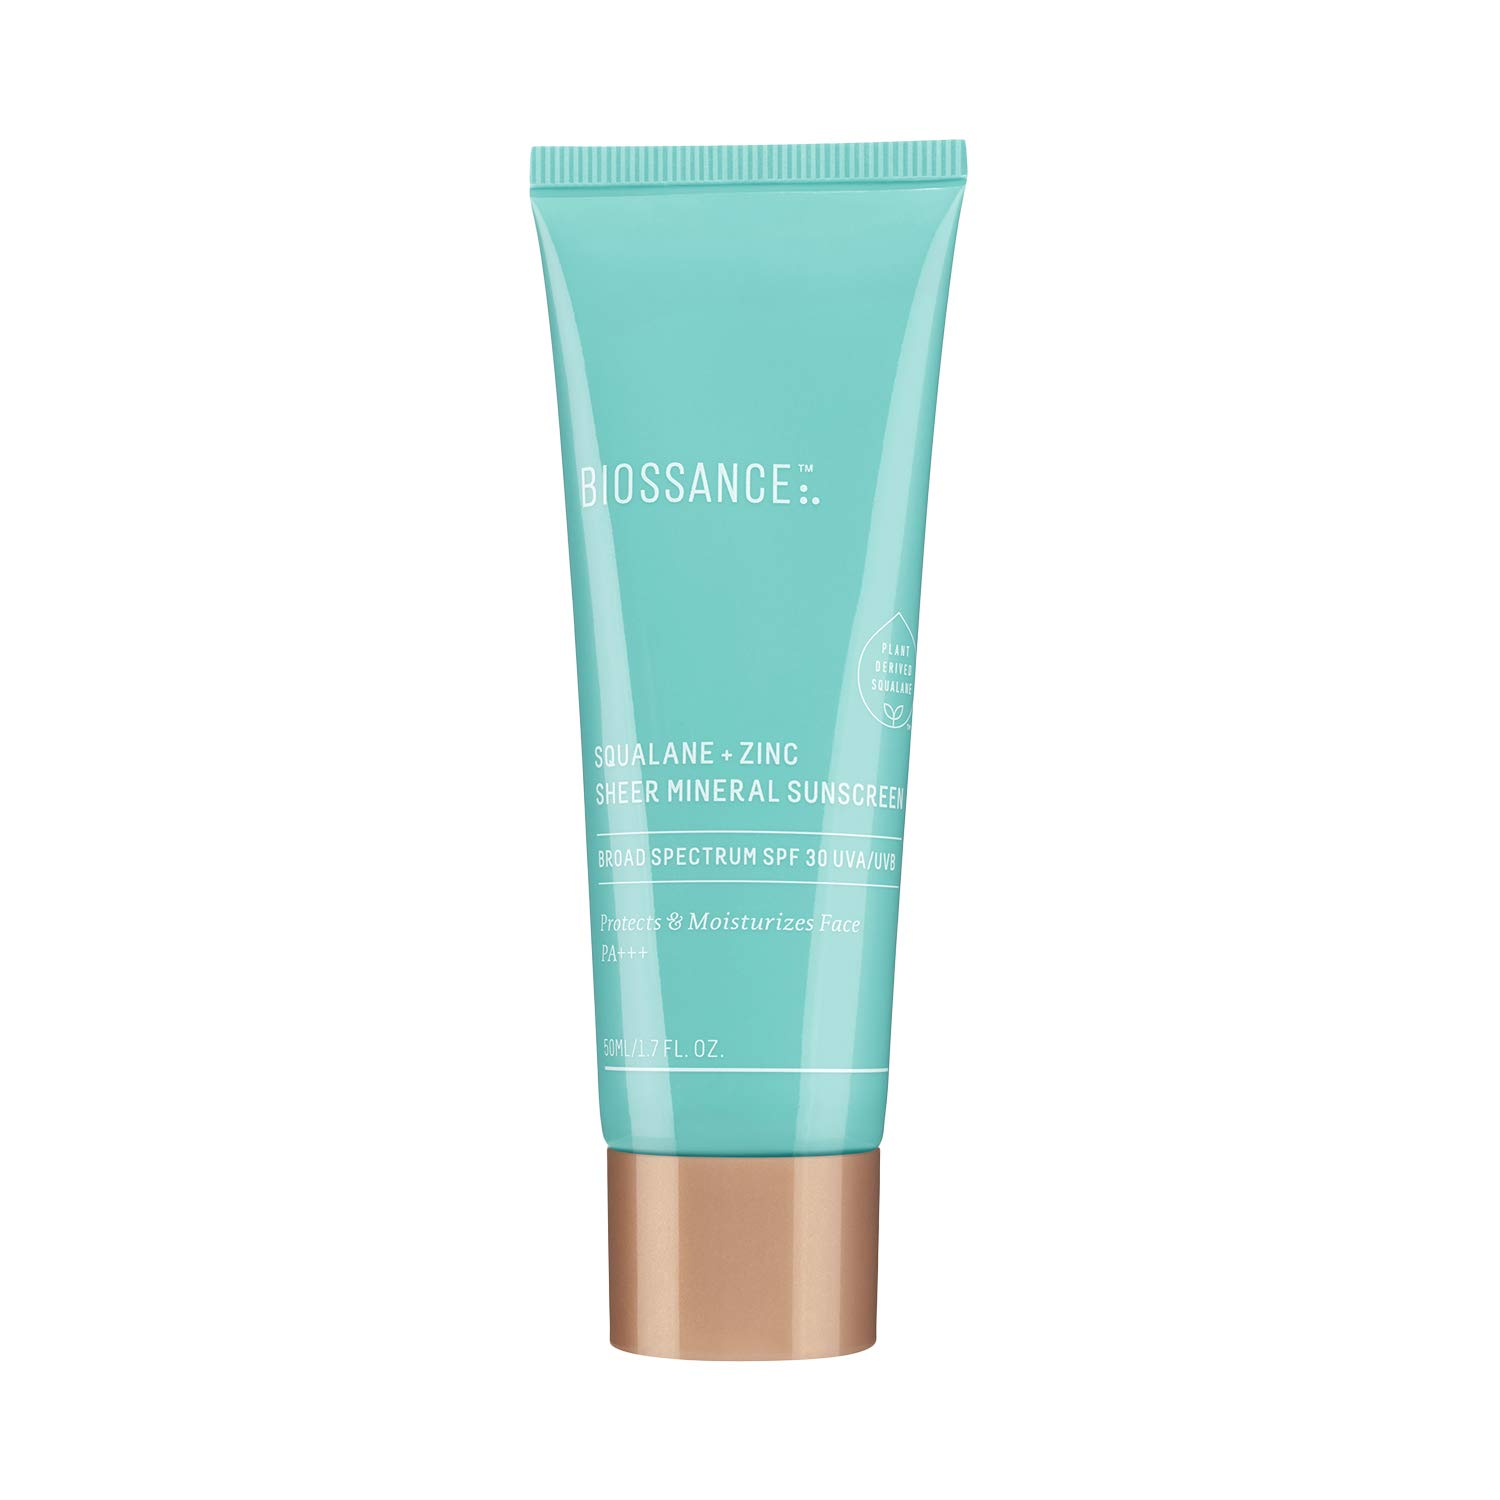 Biossance Squalane + Zinc Sheer Mineral Sunscreen - Vegan, Non-Toxic Sunscreen - 100% Non-Nano Zinc SPF 30 - No Parabens, PEG or Synthetic Fragrance (50 ml)